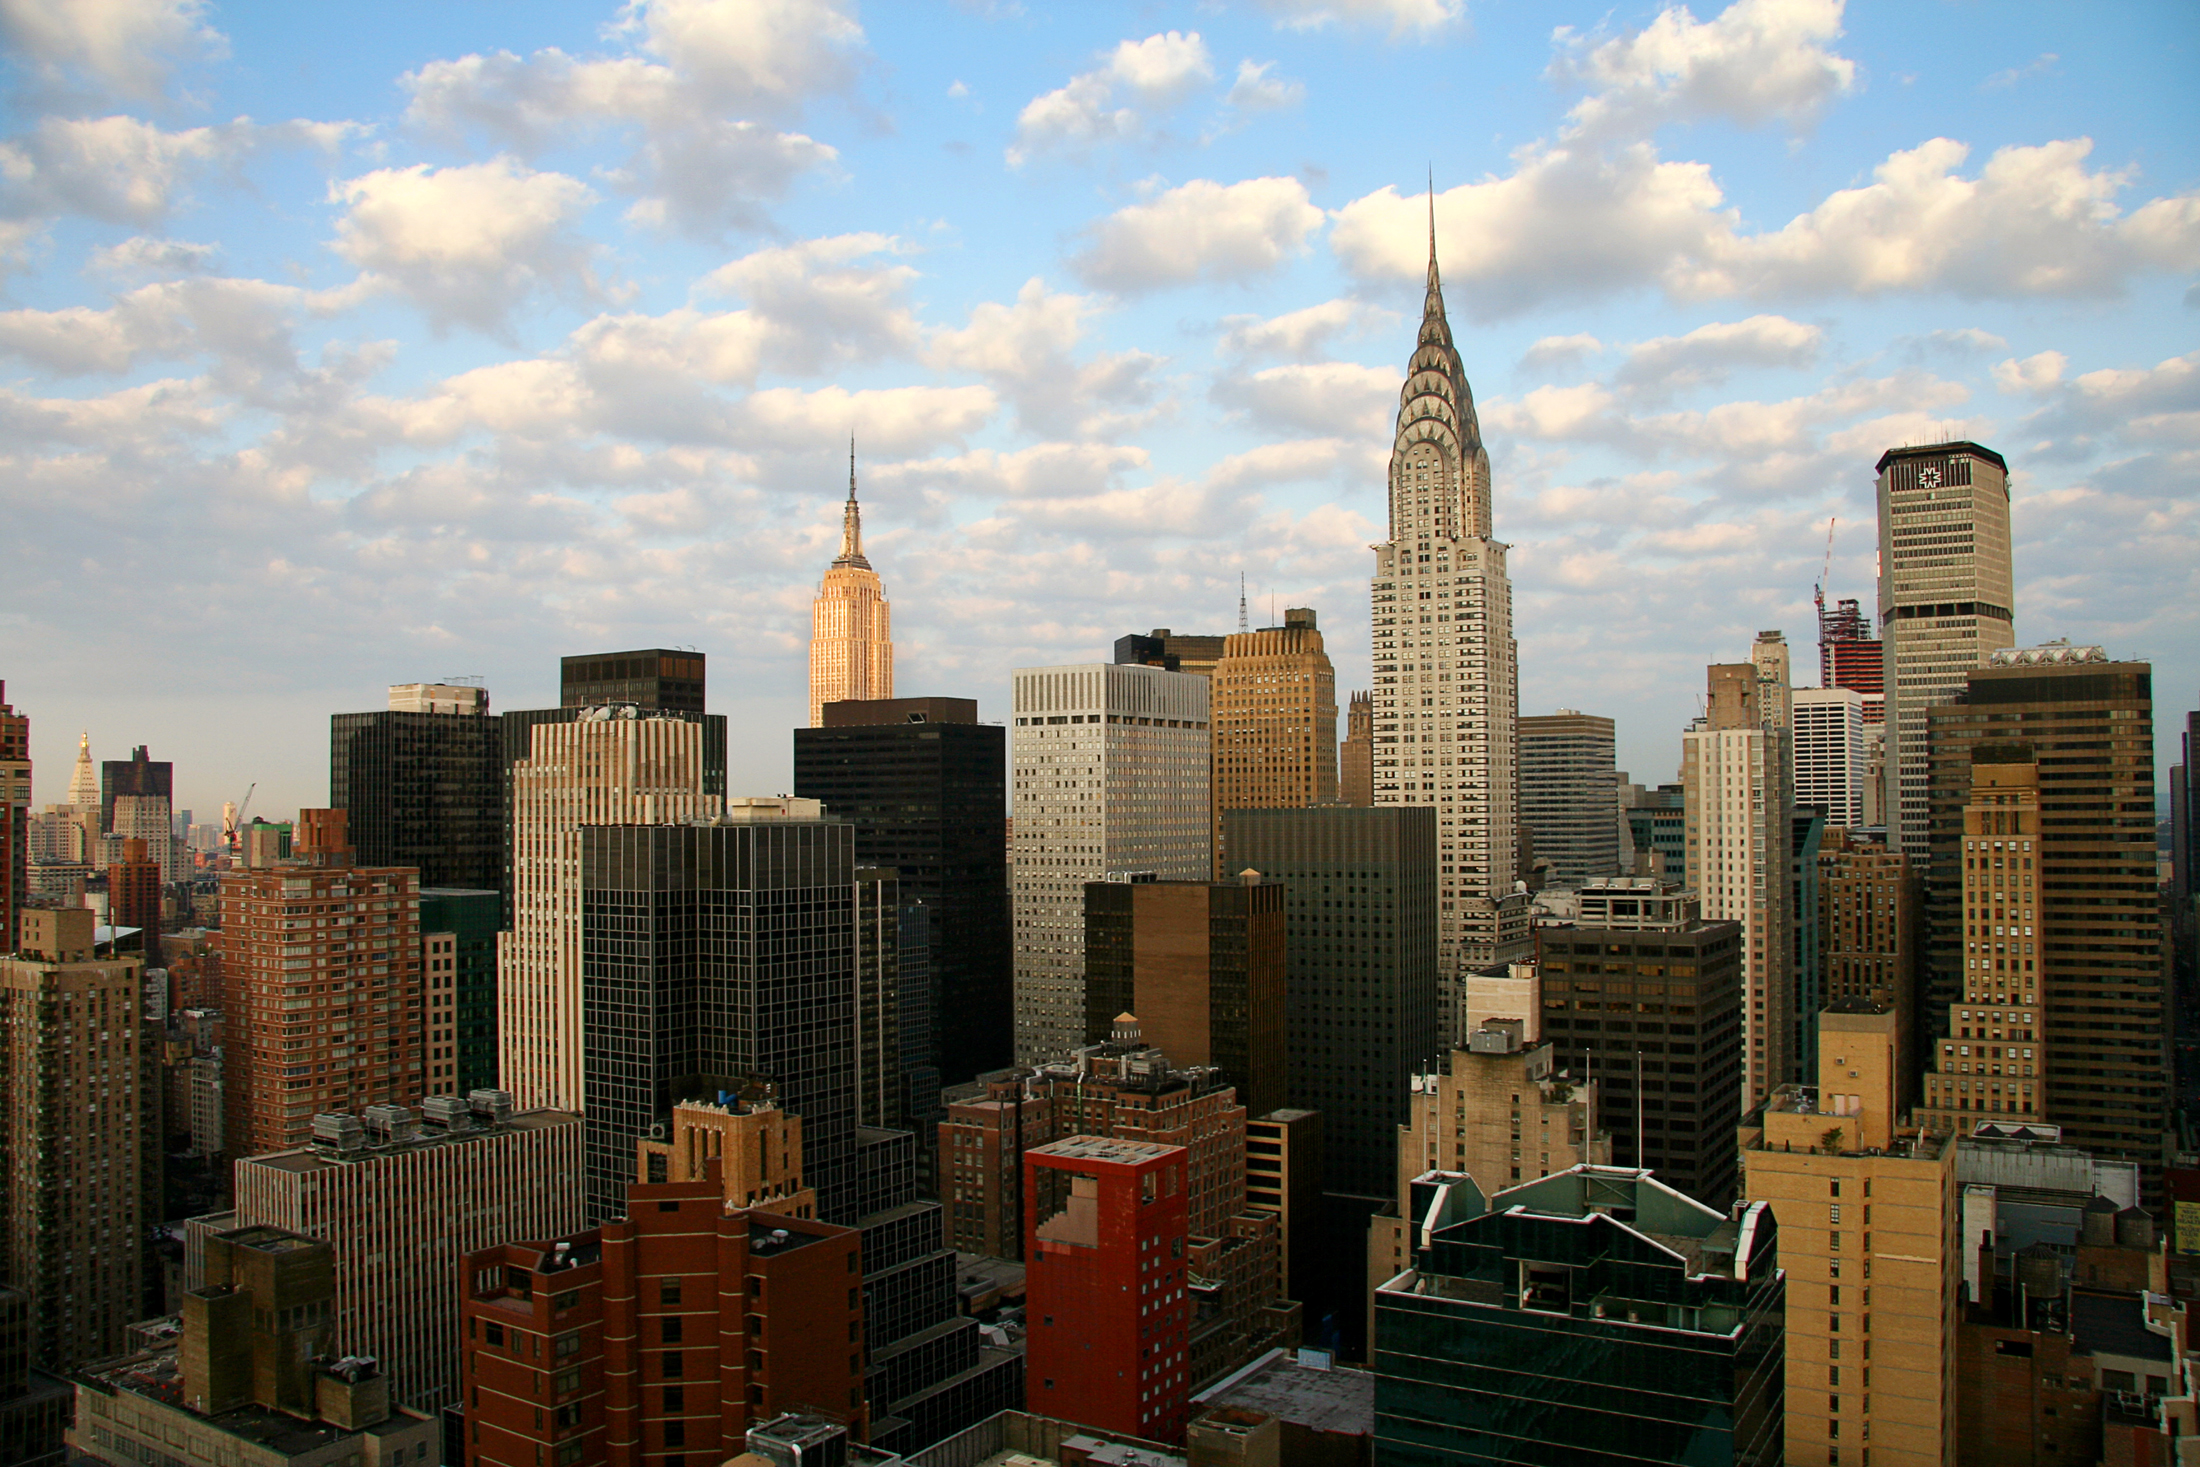 File:Manhattan3 amk.jpg - Wikipedia